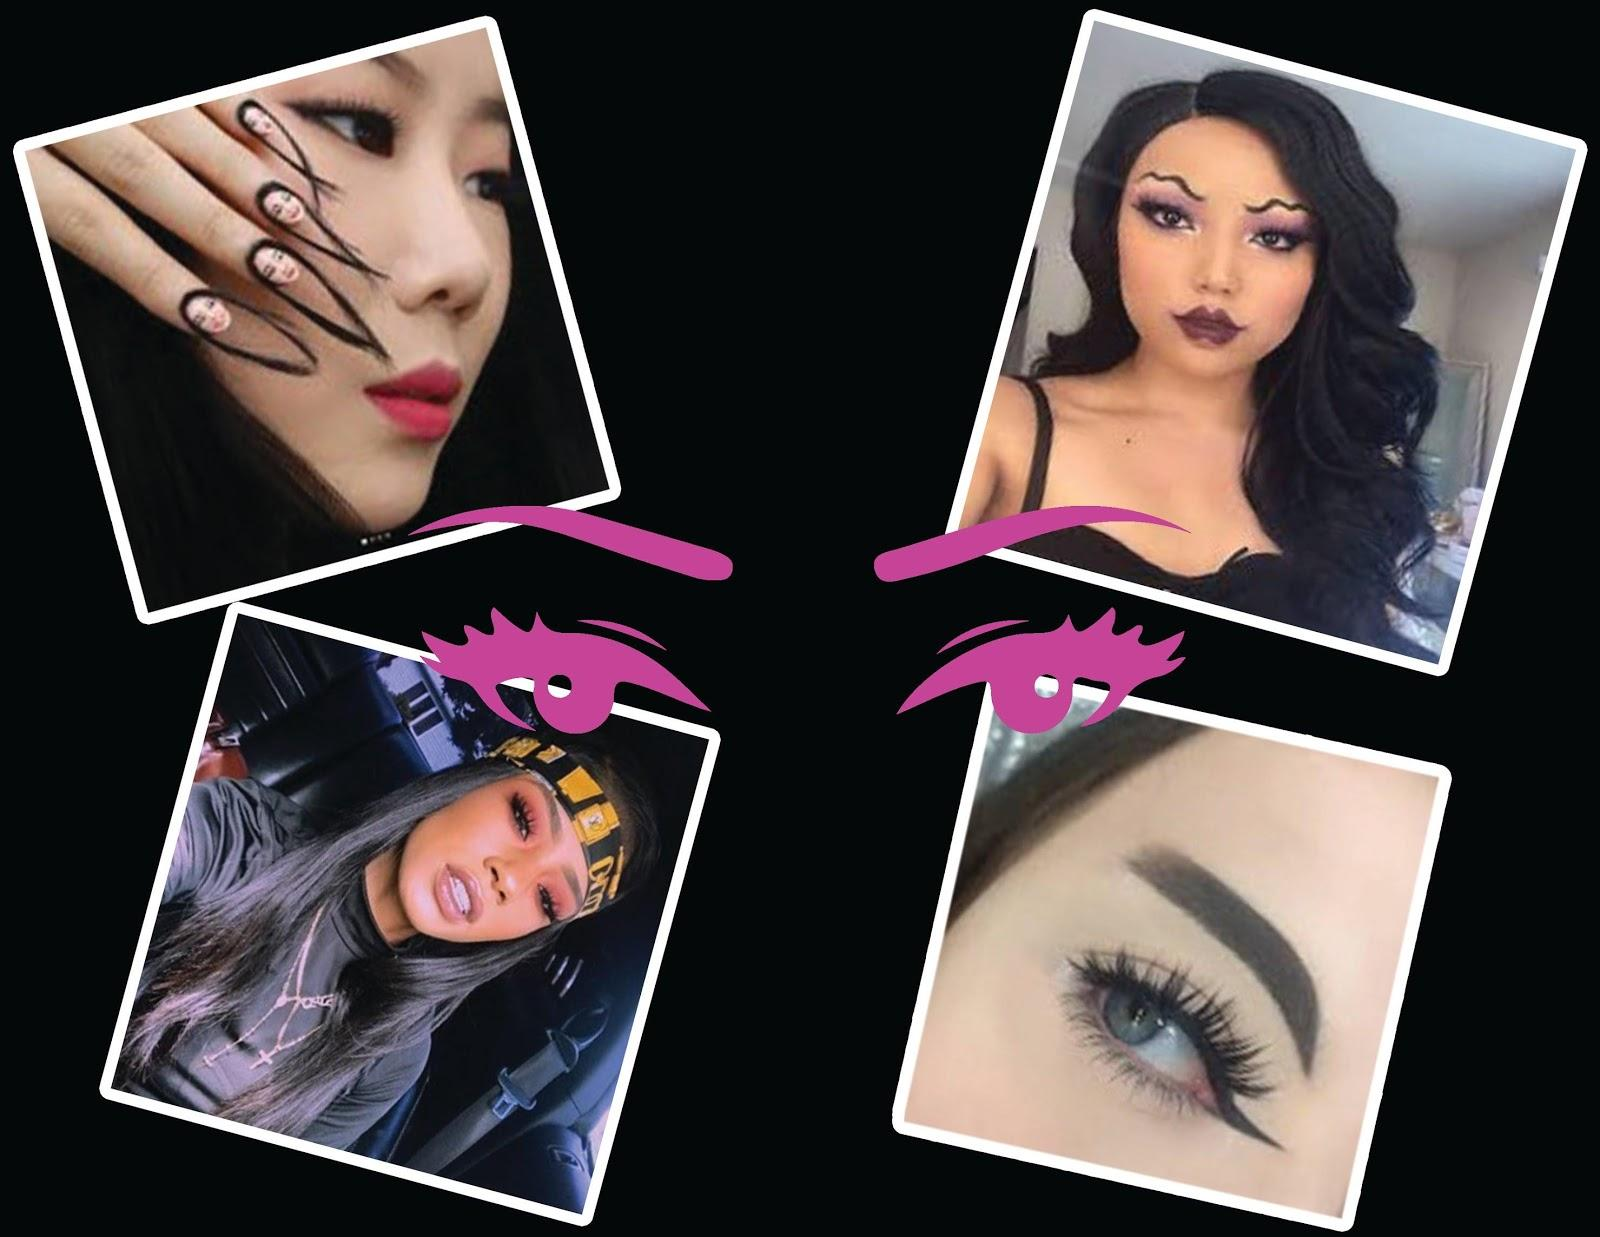 Makeup Trends Changing The World by:  Kiara Hill